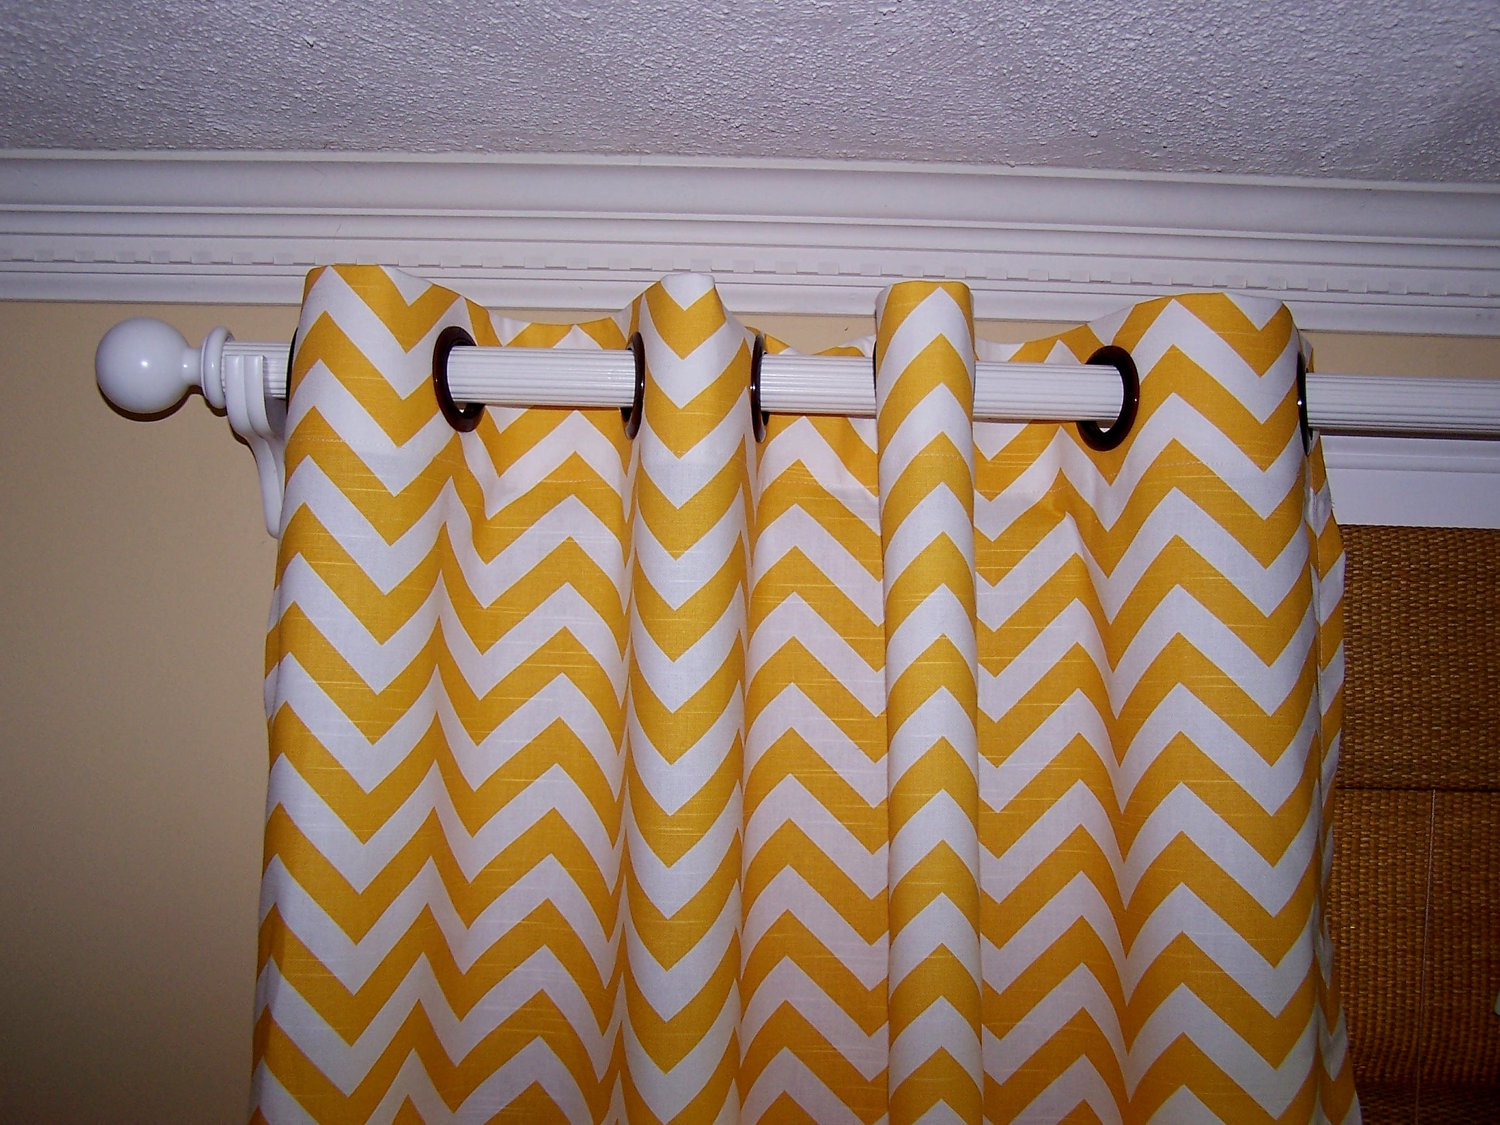 yellow and white chevron curtains with black ring matched with cream wall with white baseboard molding